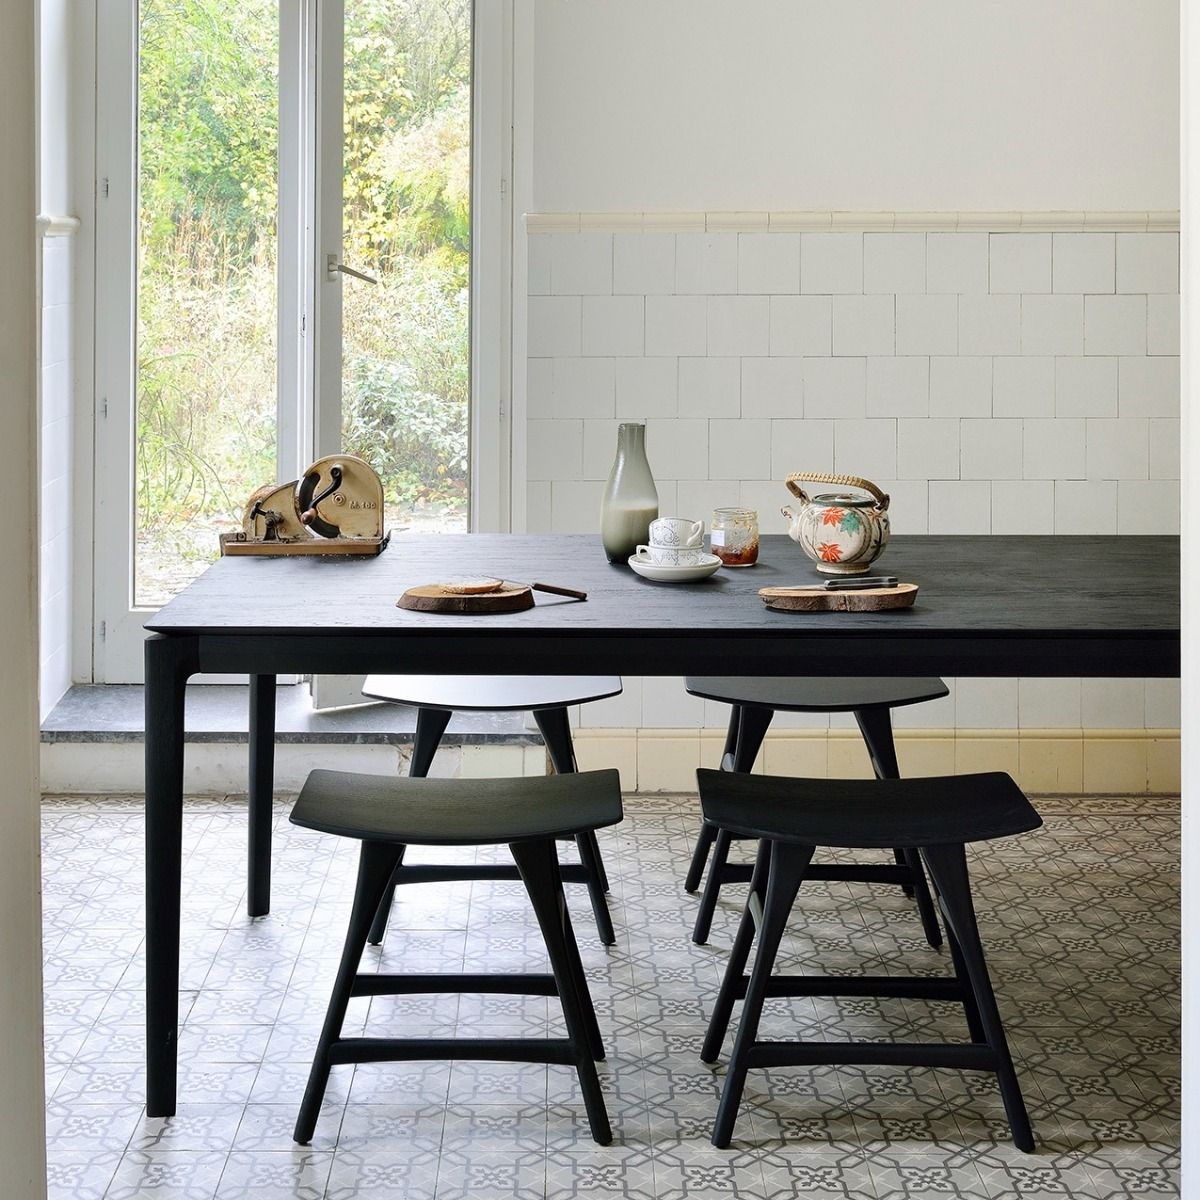 Ethnicraft Bok Dining Table